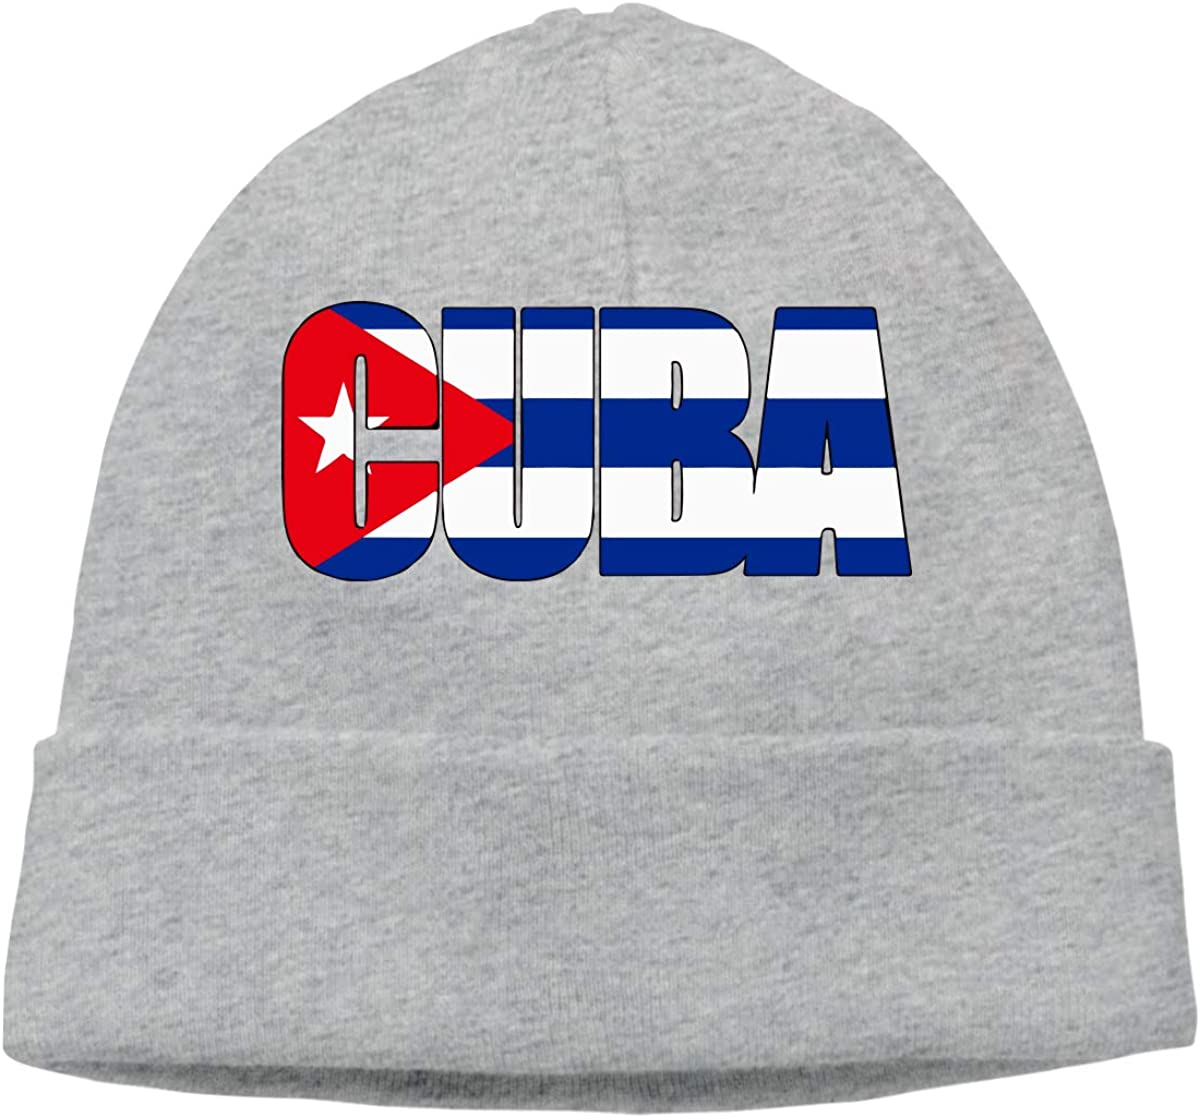 Stretch Skiing Cap BF5Y3z/&MA Unisex Cuba Text with Cuba Flag Knitting Hat